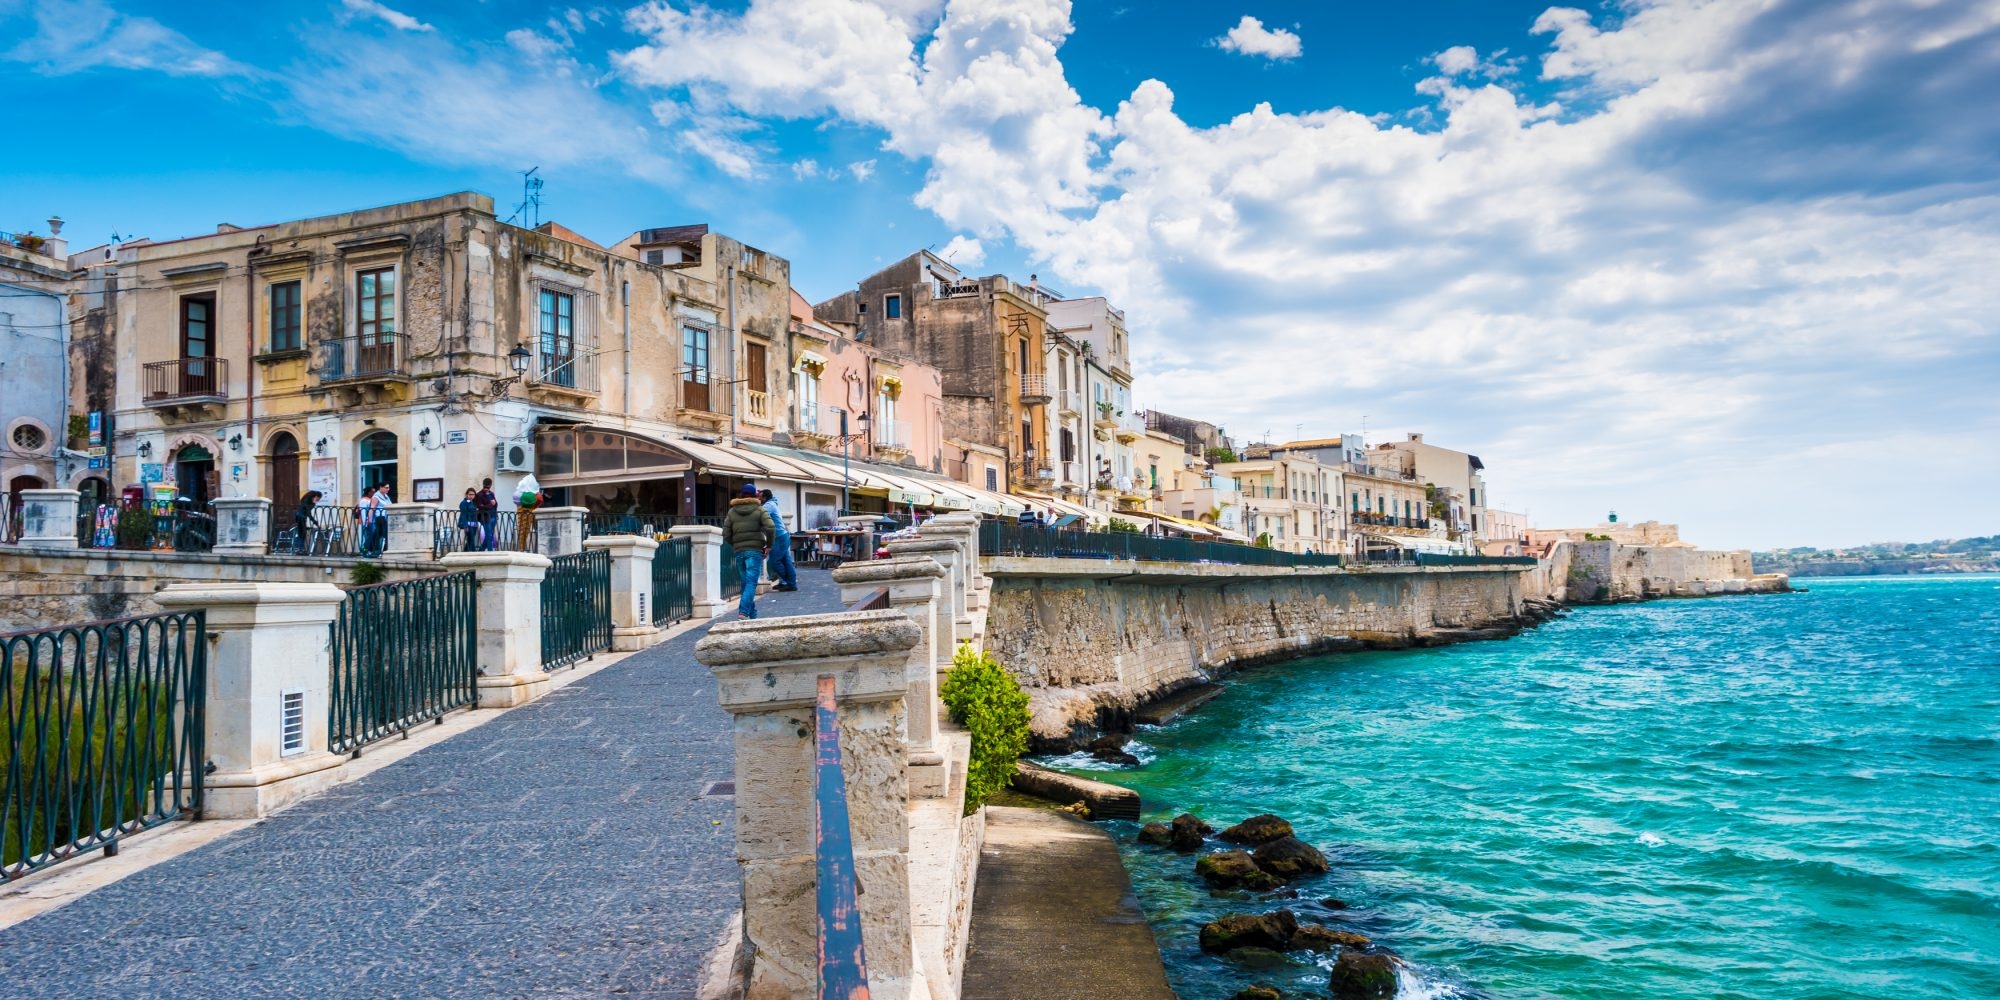 Coast of Ortigia island at city of Syracuse, Sicily, Italy.